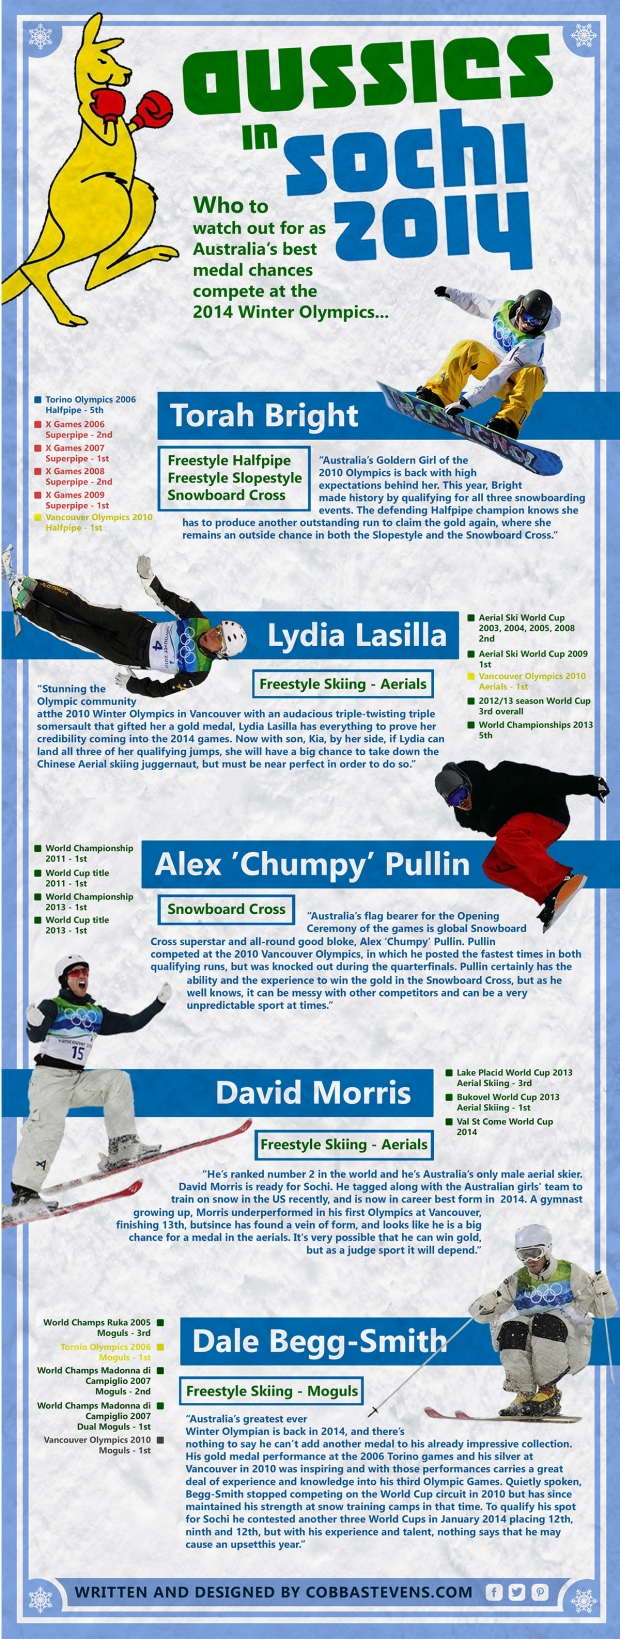 Aussies in Sochi